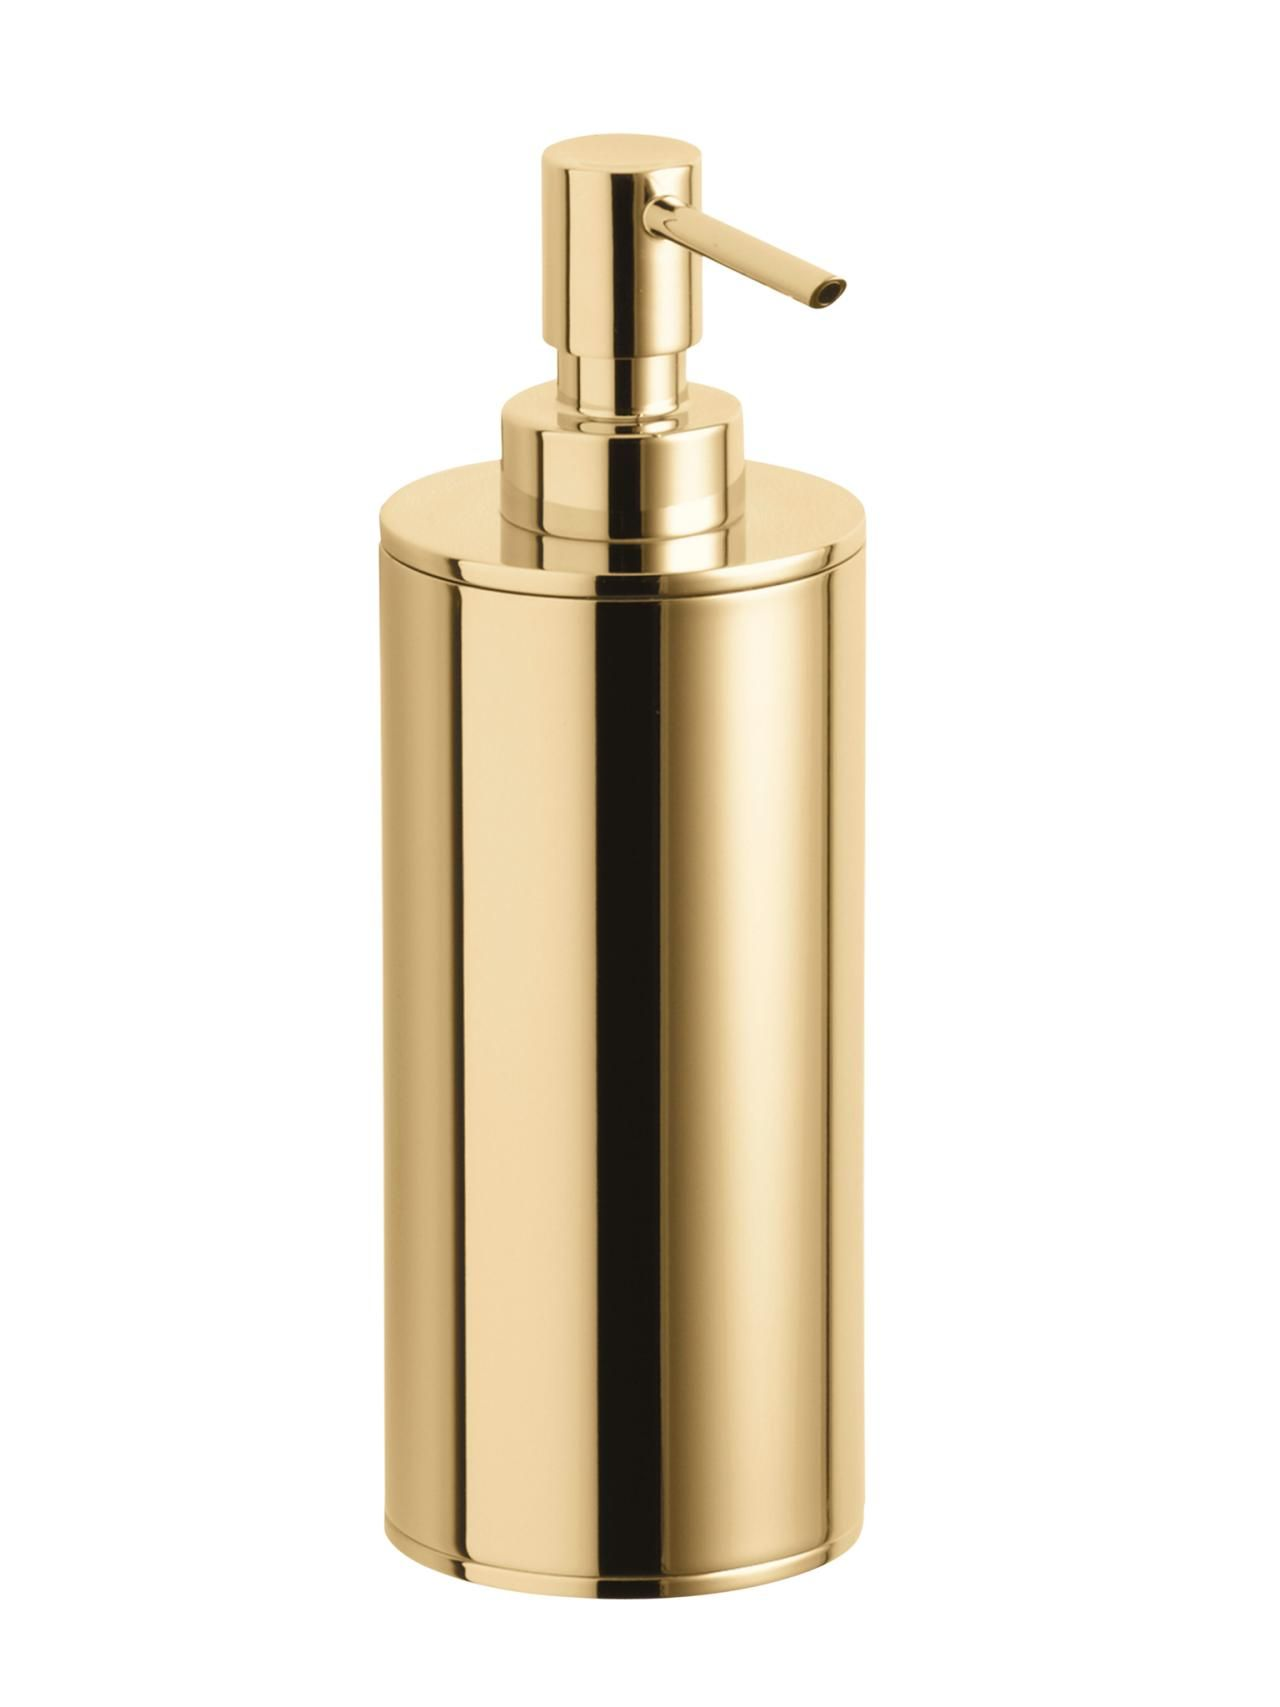 So Glam In A Bathroom Plus It S Tarnish Resistant Kohler Purist 6 1 2 Ounce Metal Soap Dispenser Vibrant French Gold 84 Build